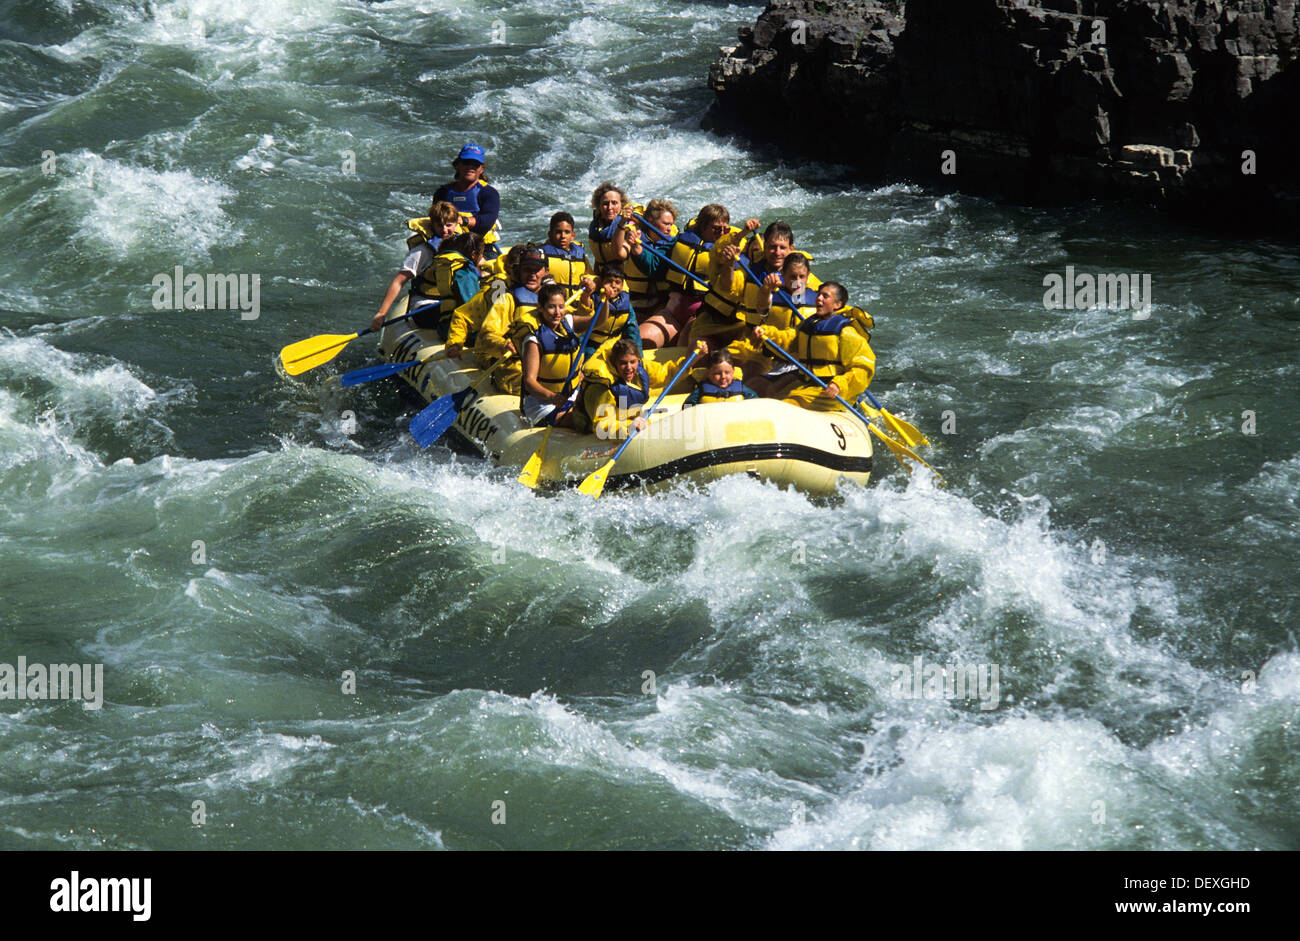 Elk266-1257 Wyoming, Jackson Hole, Snake River, whitewater rafting - Stock Image